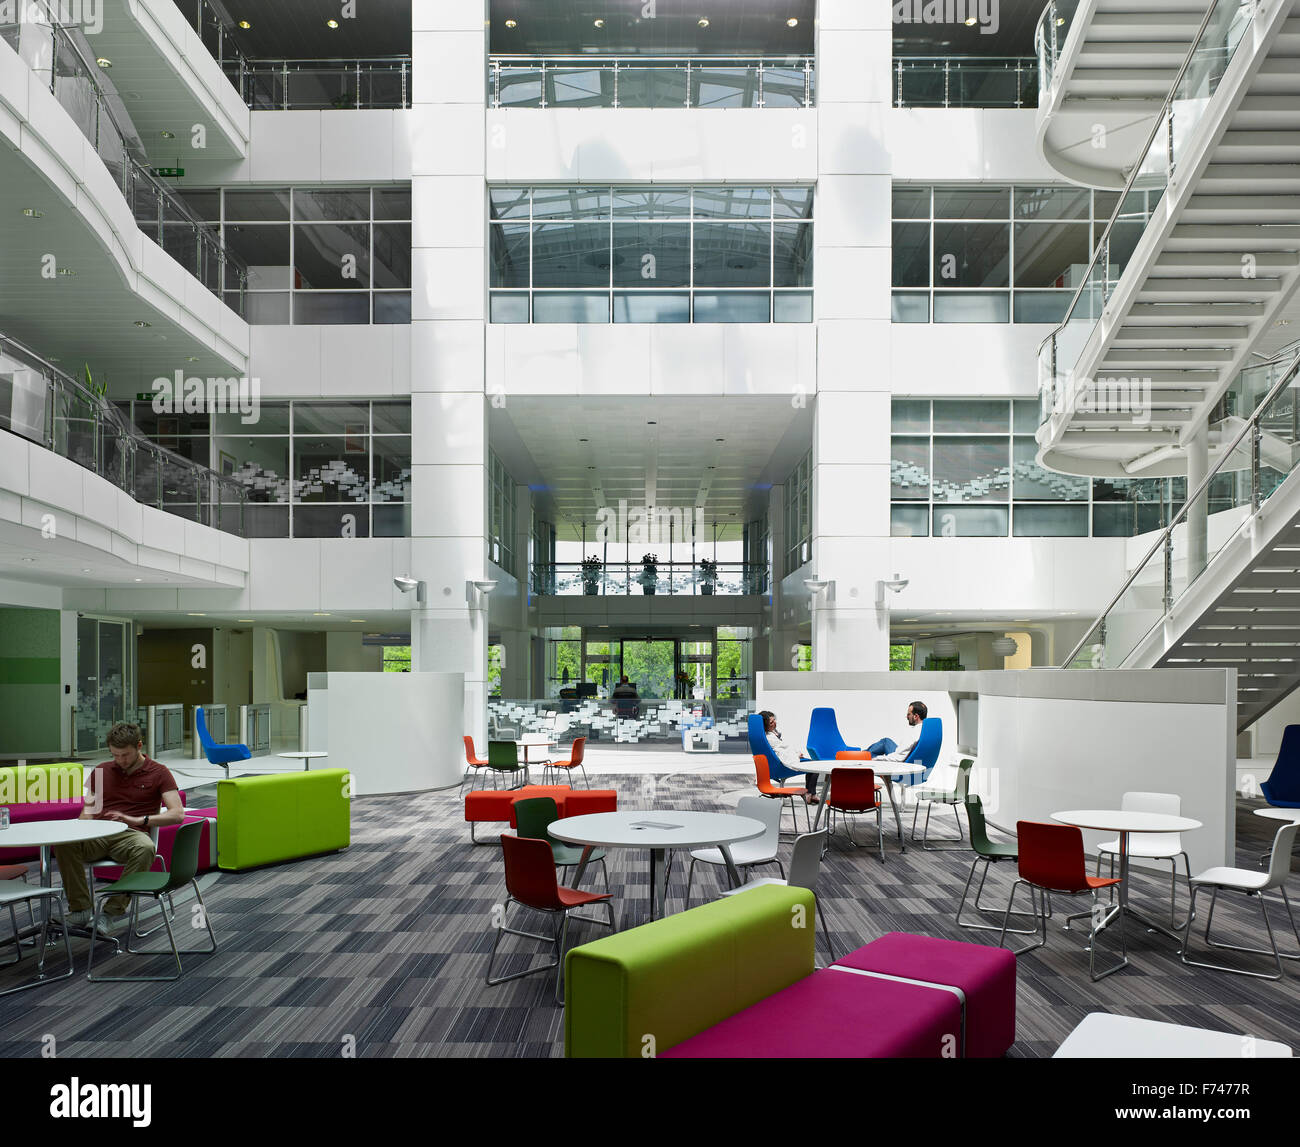 Atrium Lounge With Seating In Microsoft Campus, Thames